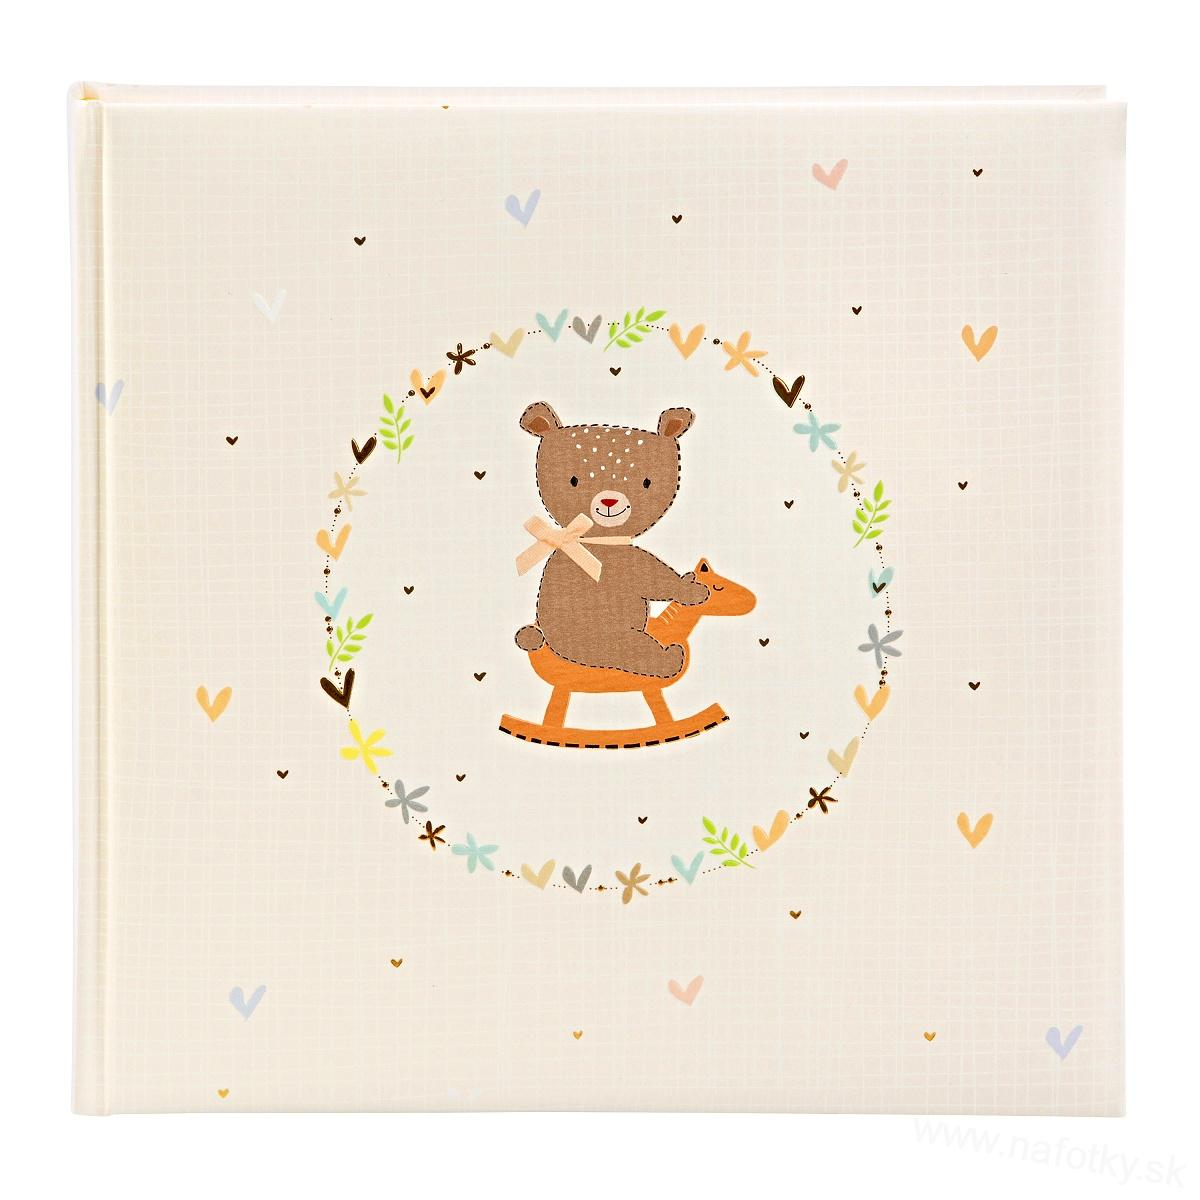 ROCKING BEAR P60 ALBUM 25x25 TURNOWSKY